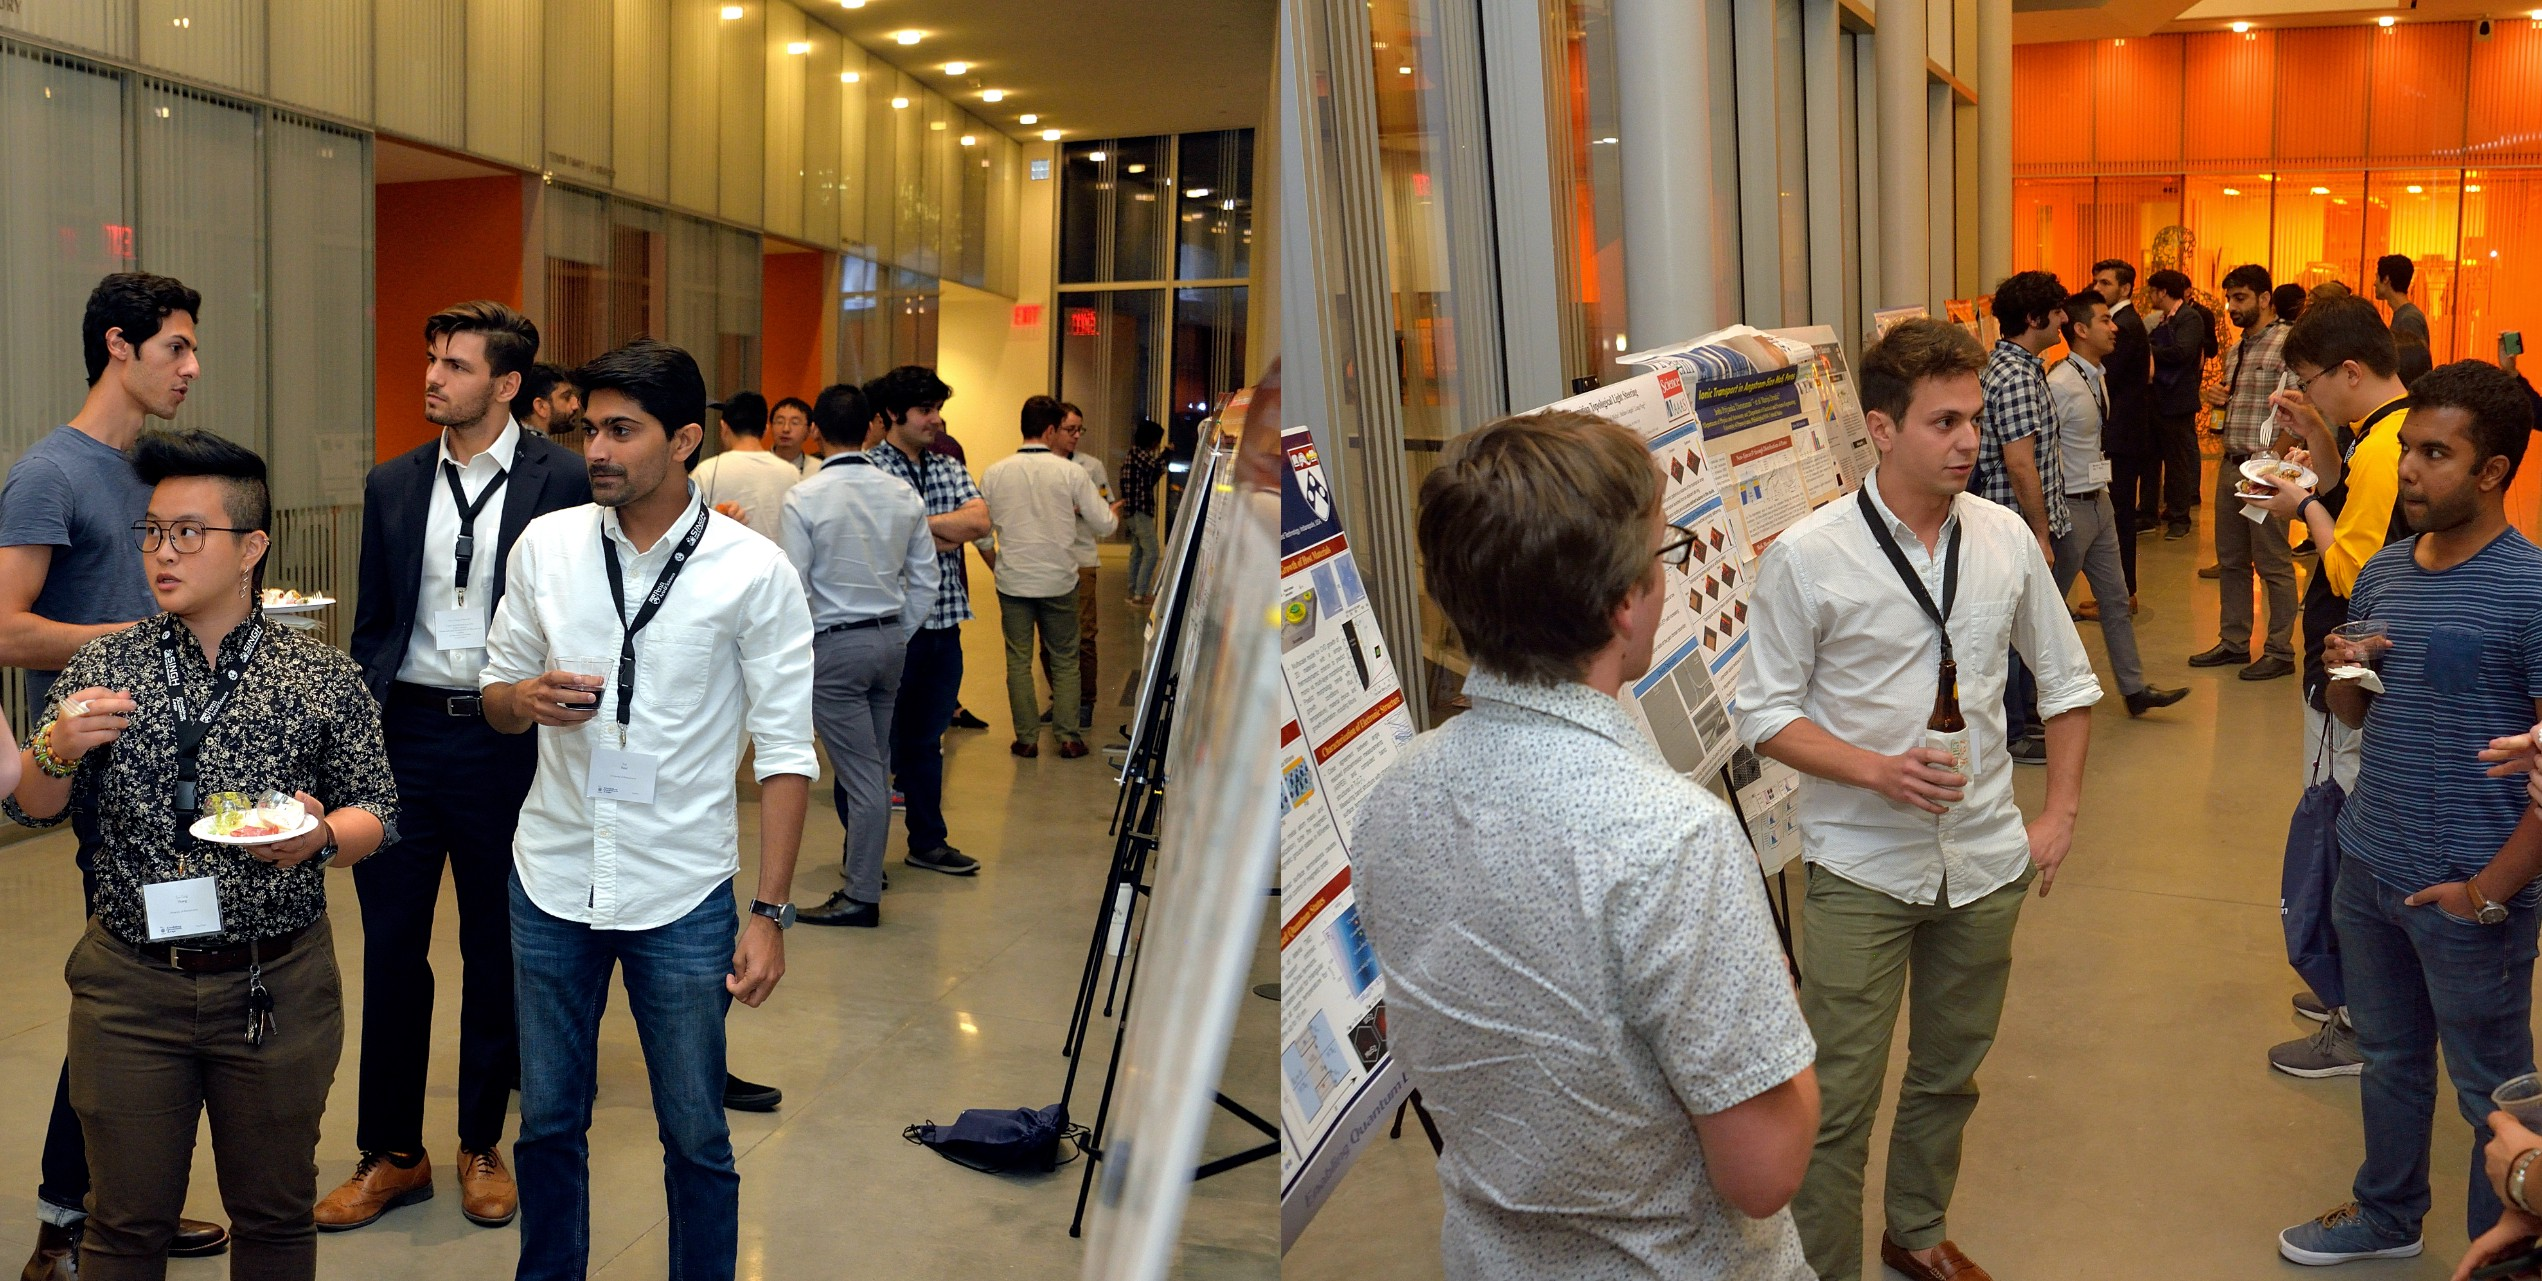 Two photos of students presenting research and mingling at the symposium.